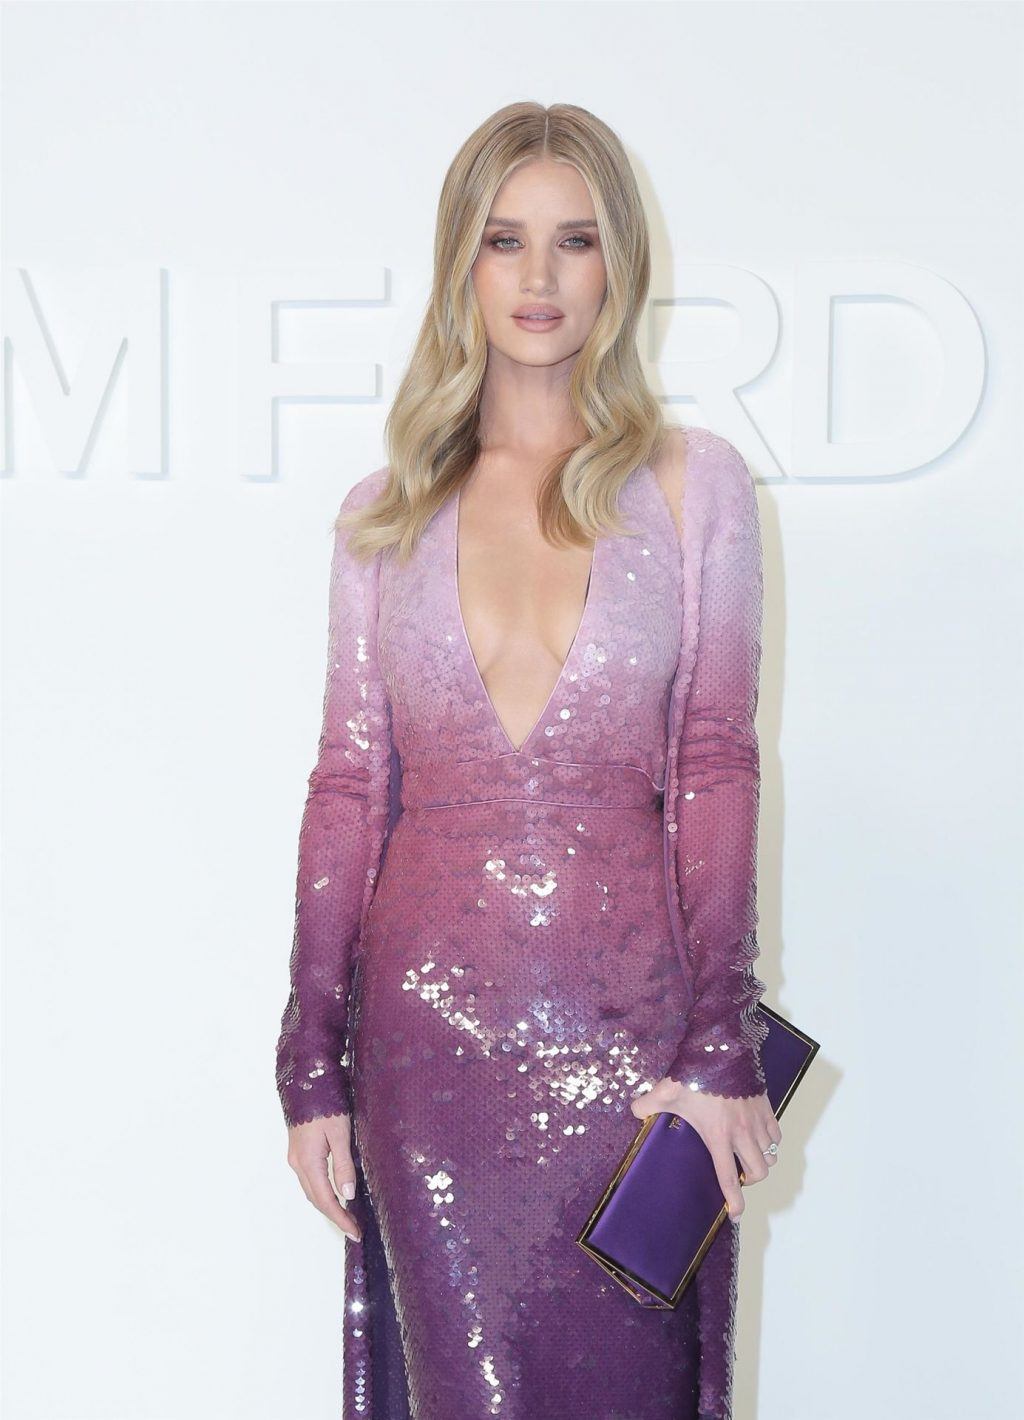 Rosie Huntington Whiteley Sexy The Fappening Blog 54 1024x1420 - Rosie Huntington-Whiteley Shows Her Cleavage at the Tom Ford Fashion Show (115 Photos)